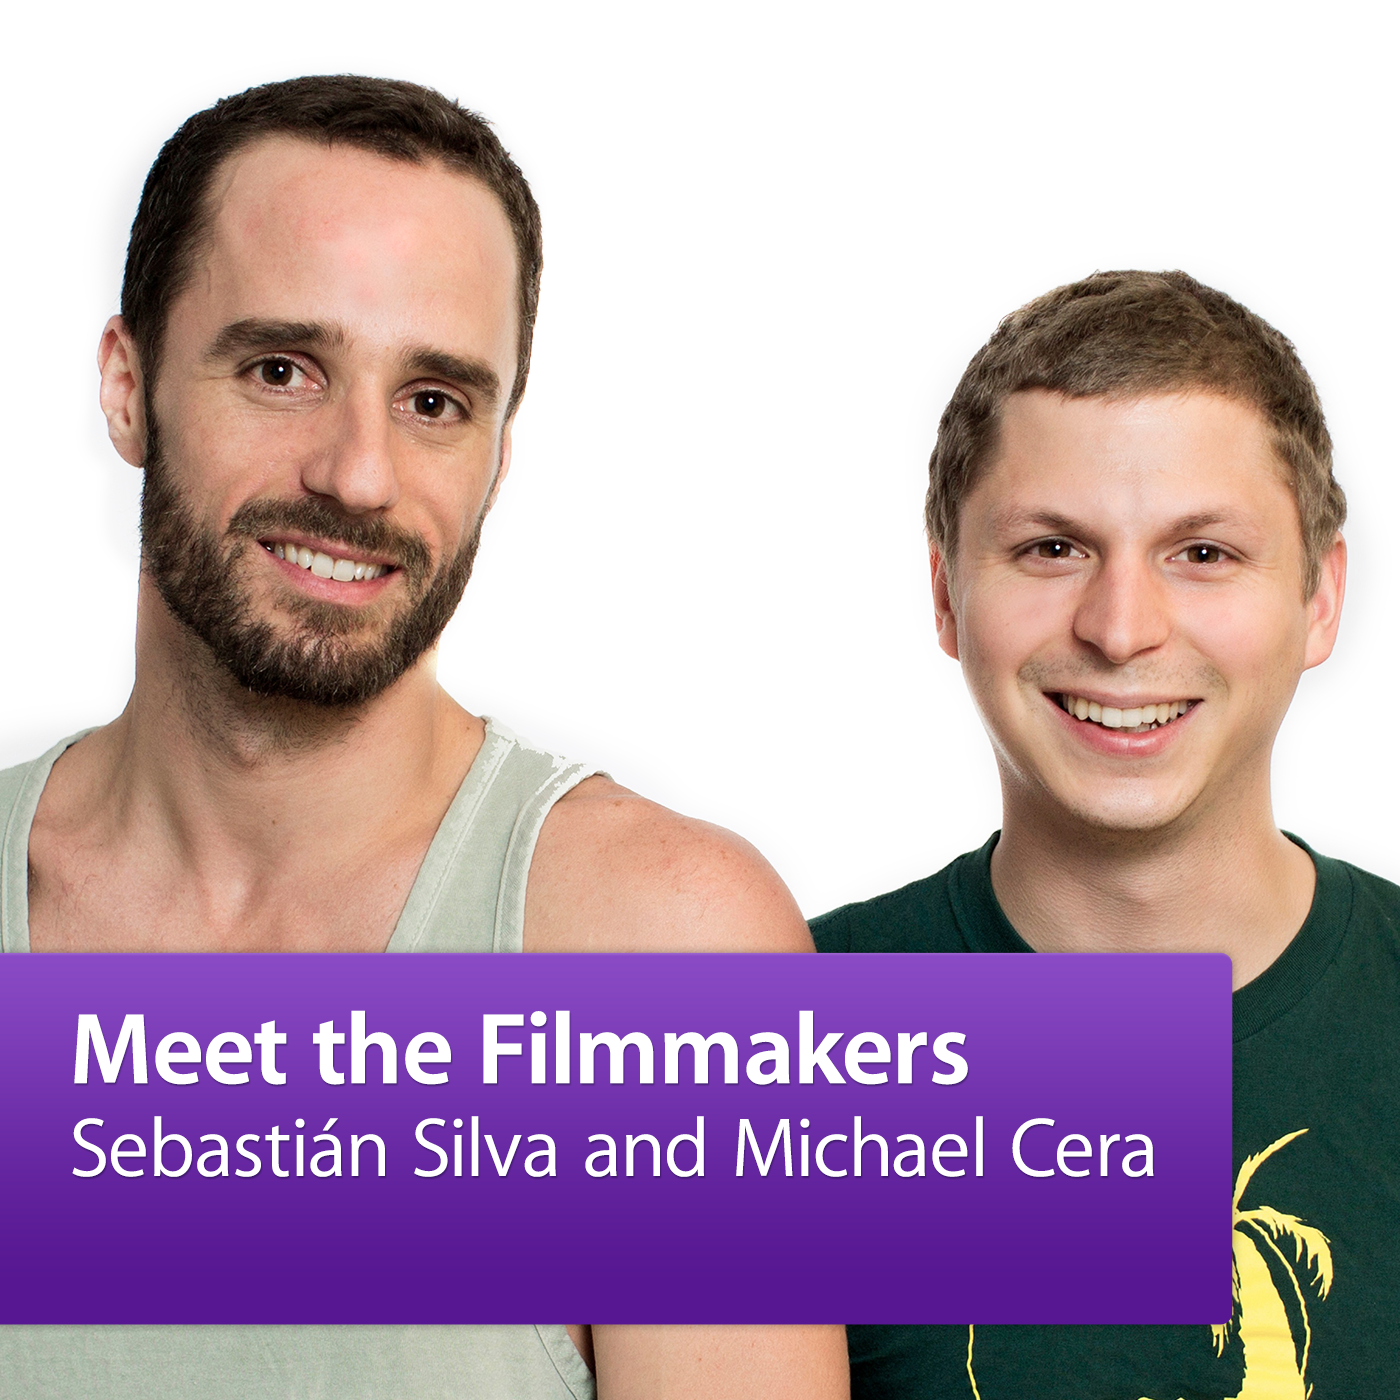 Michael Cera and Sebastián Silva: Meet the Filmmakers